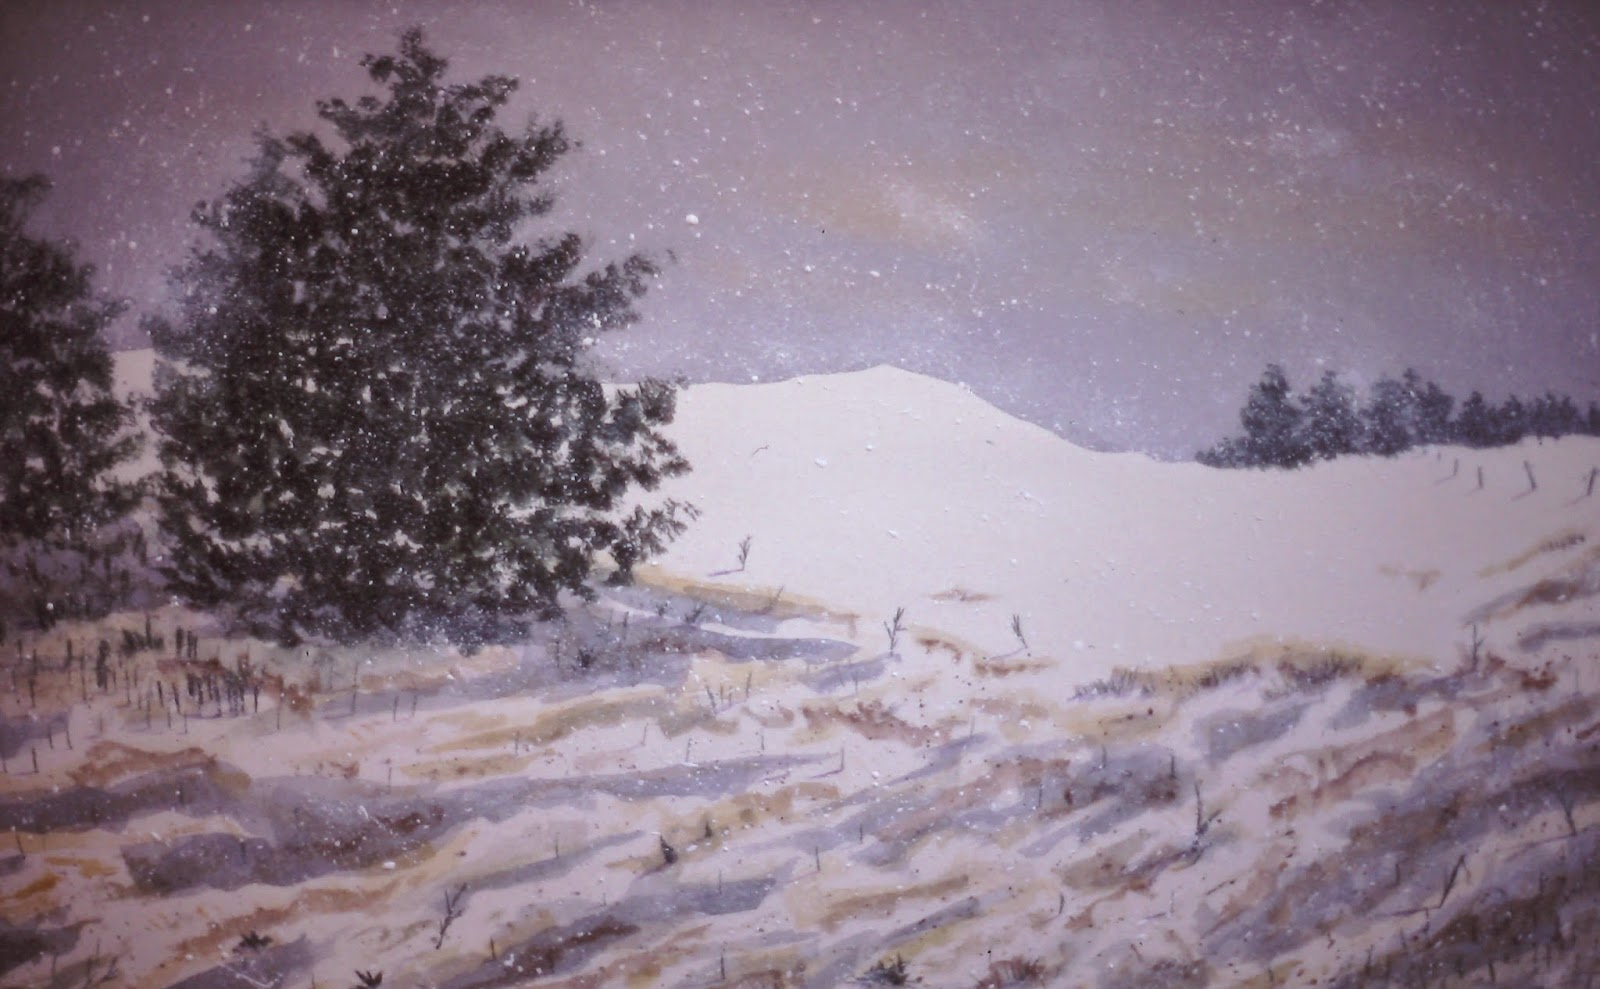 Back Road, near Little Keithock Farmhouse, Trinity, Angus, Scotland  18x36 inches. Watercolor on paper, c. 1990.  In a private collection in San Francisco, California